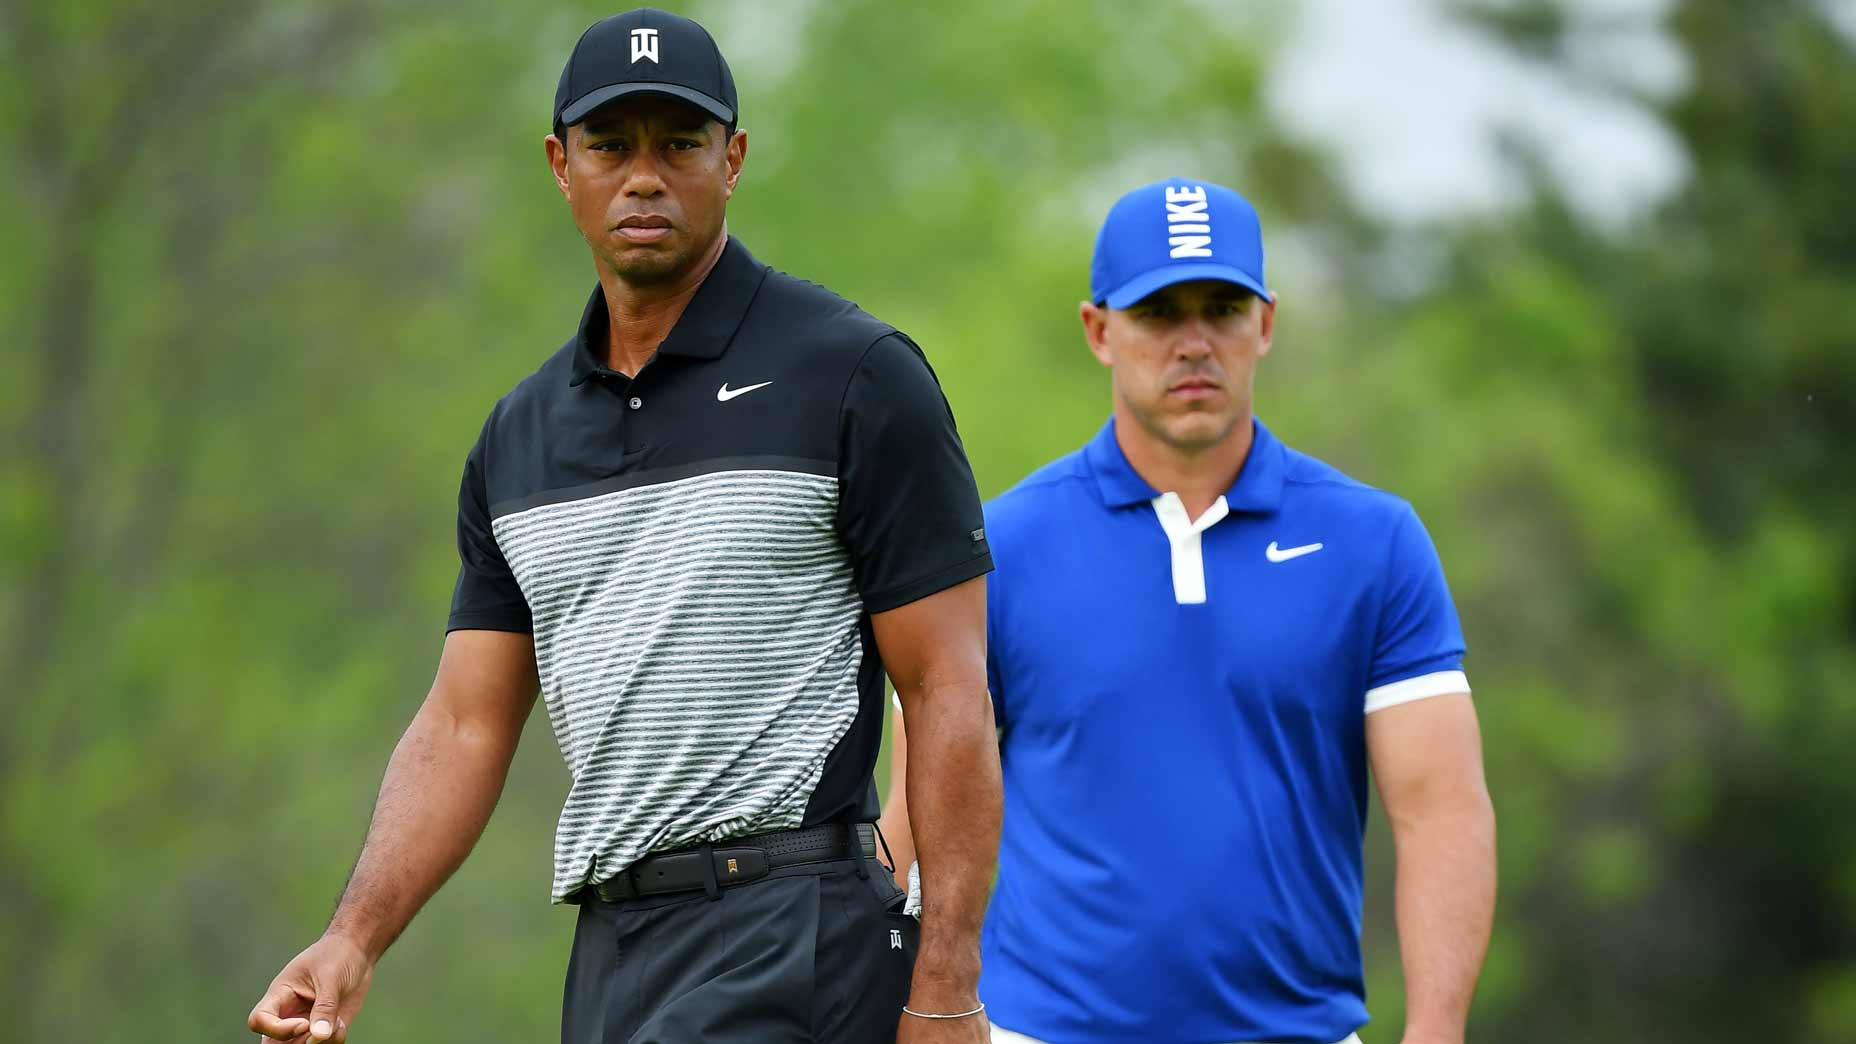 Golfers Tiger Woods and Brooks Koepka